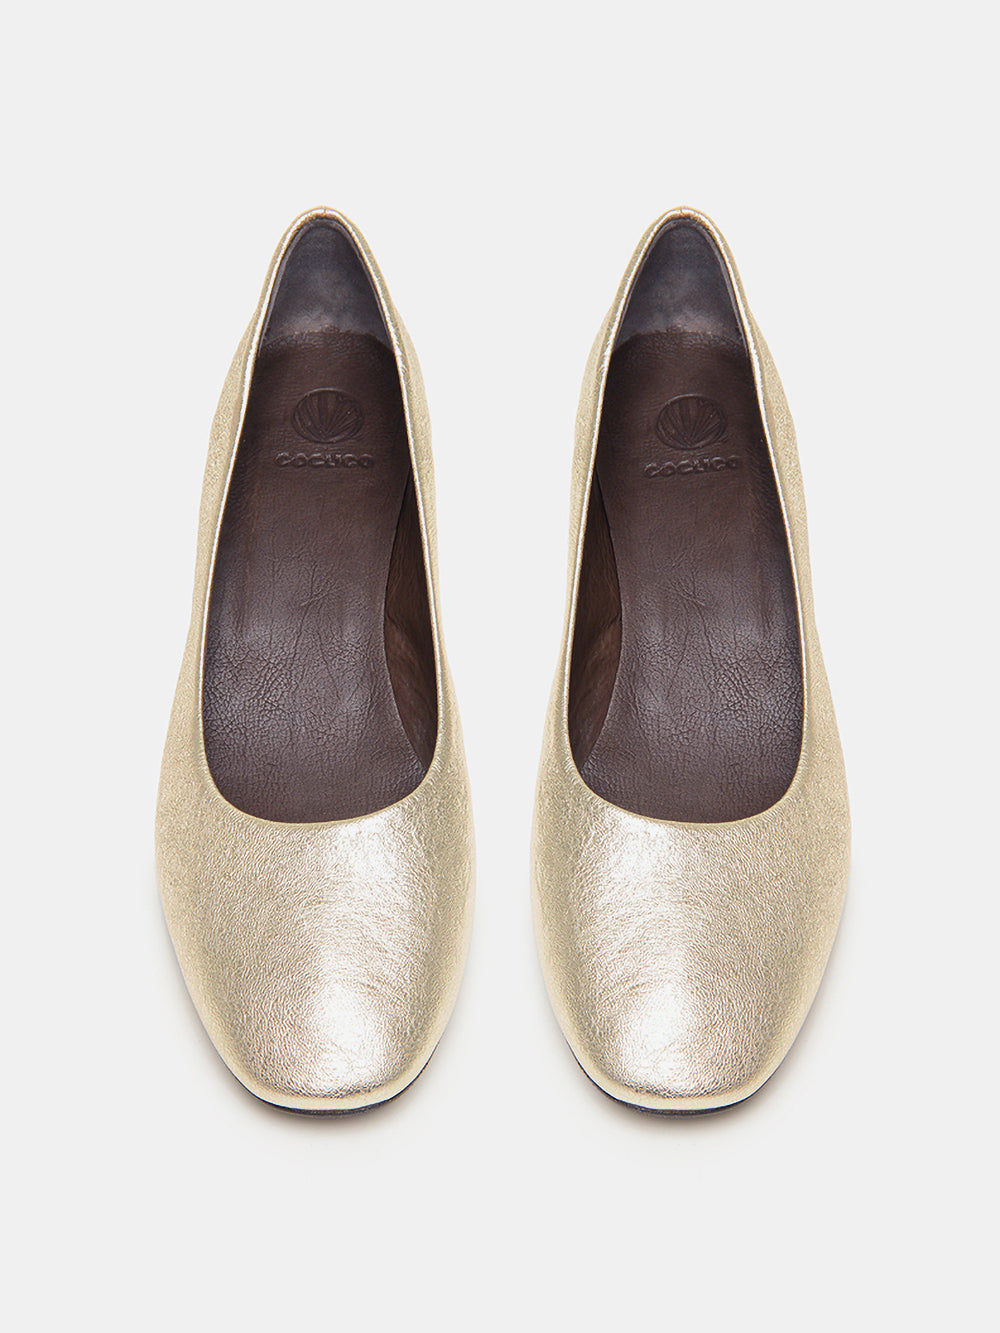 elegant & classic, block-heel foiled metallic leather pump by coclico